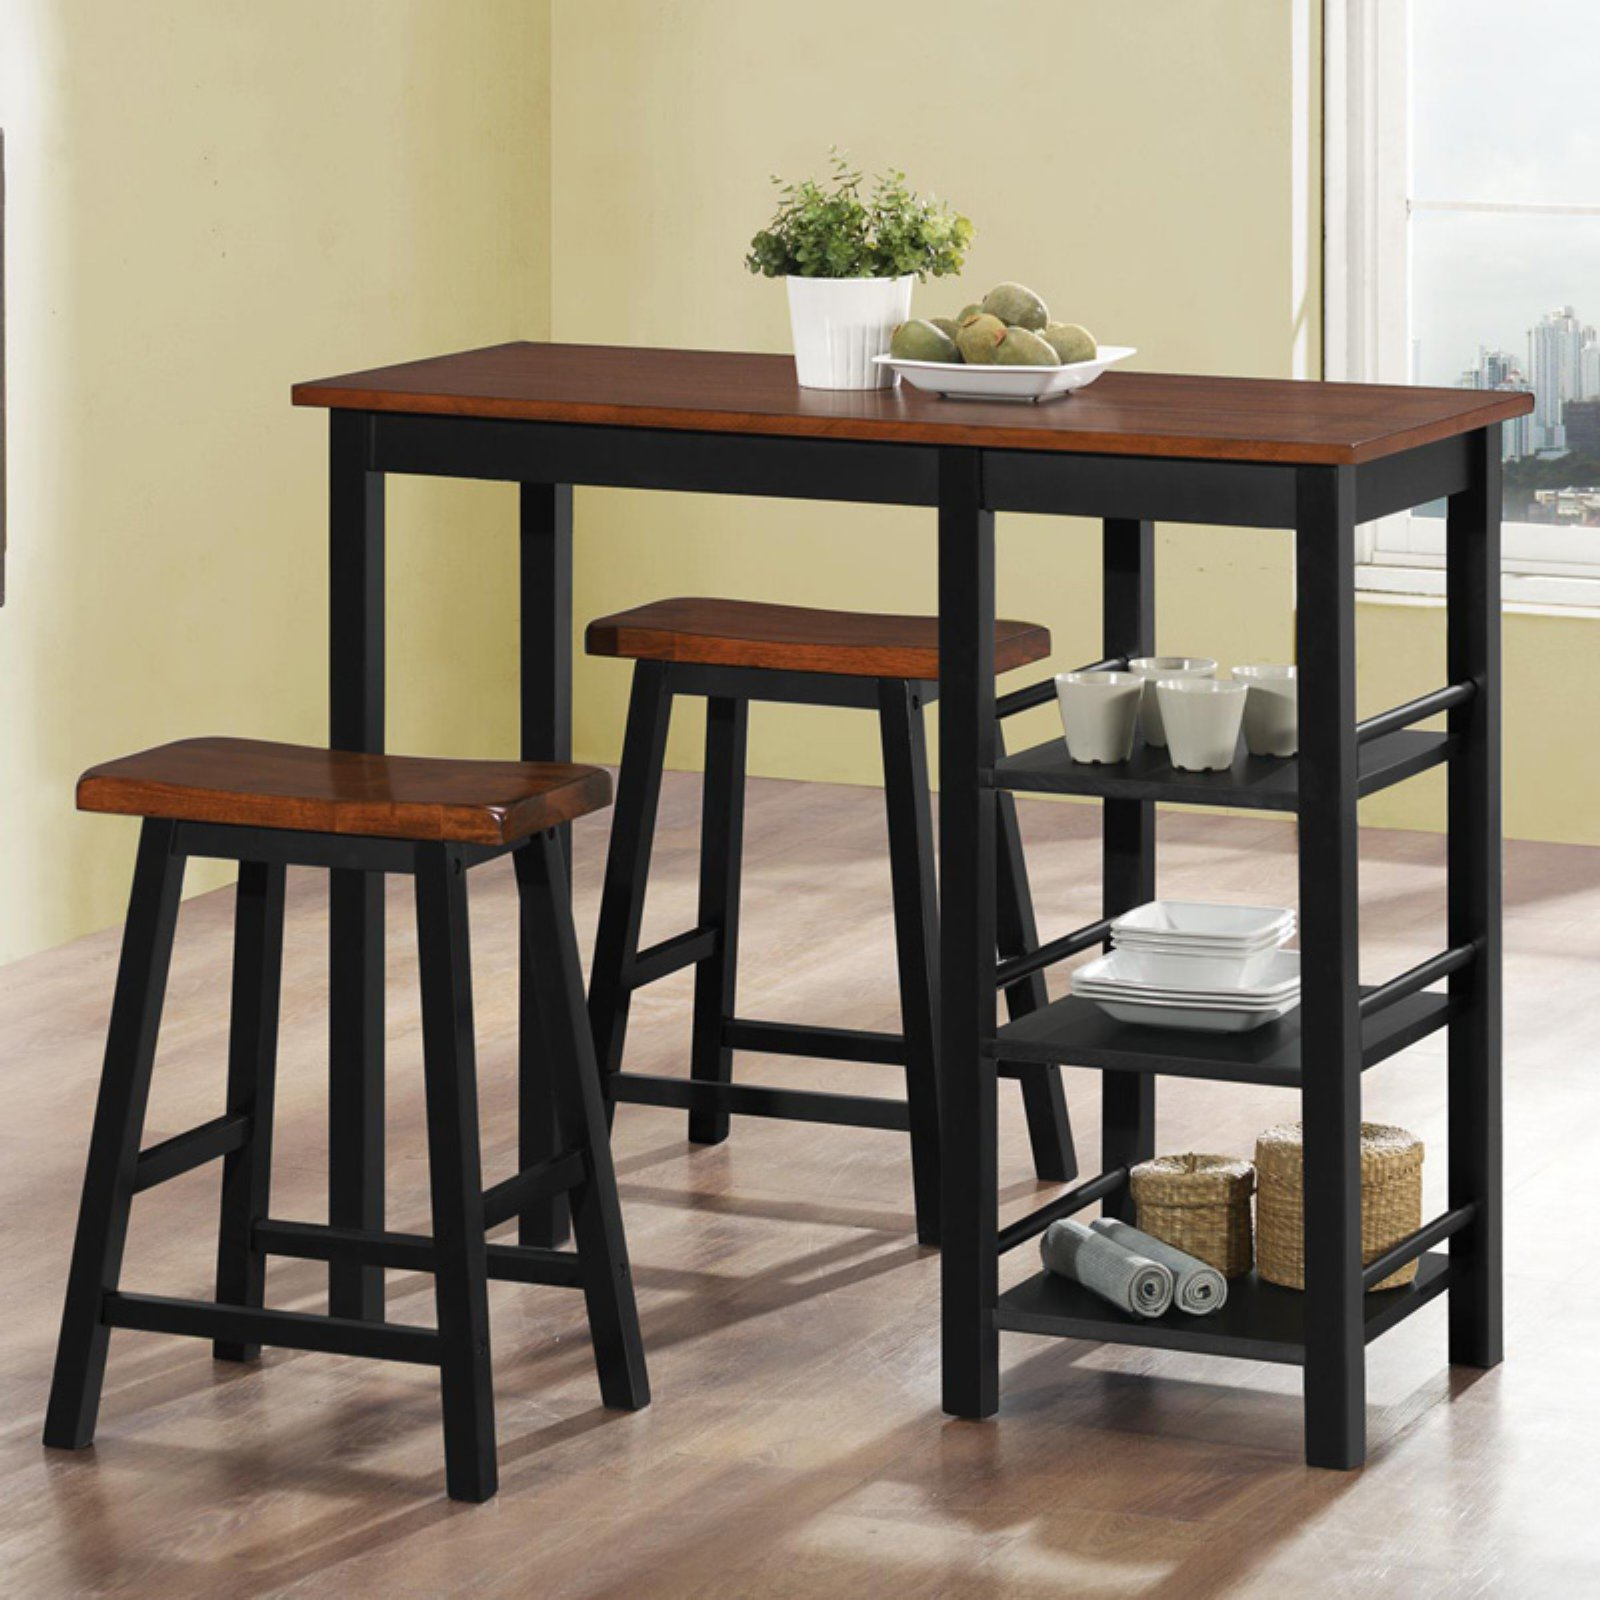 Home Source Industries 3 Piece Rectangular Counter Height Dining Pertaining To Well Known Denzel 5 Piece Counter Height Breakfast Nook Dining Sets (View 8 of 25)